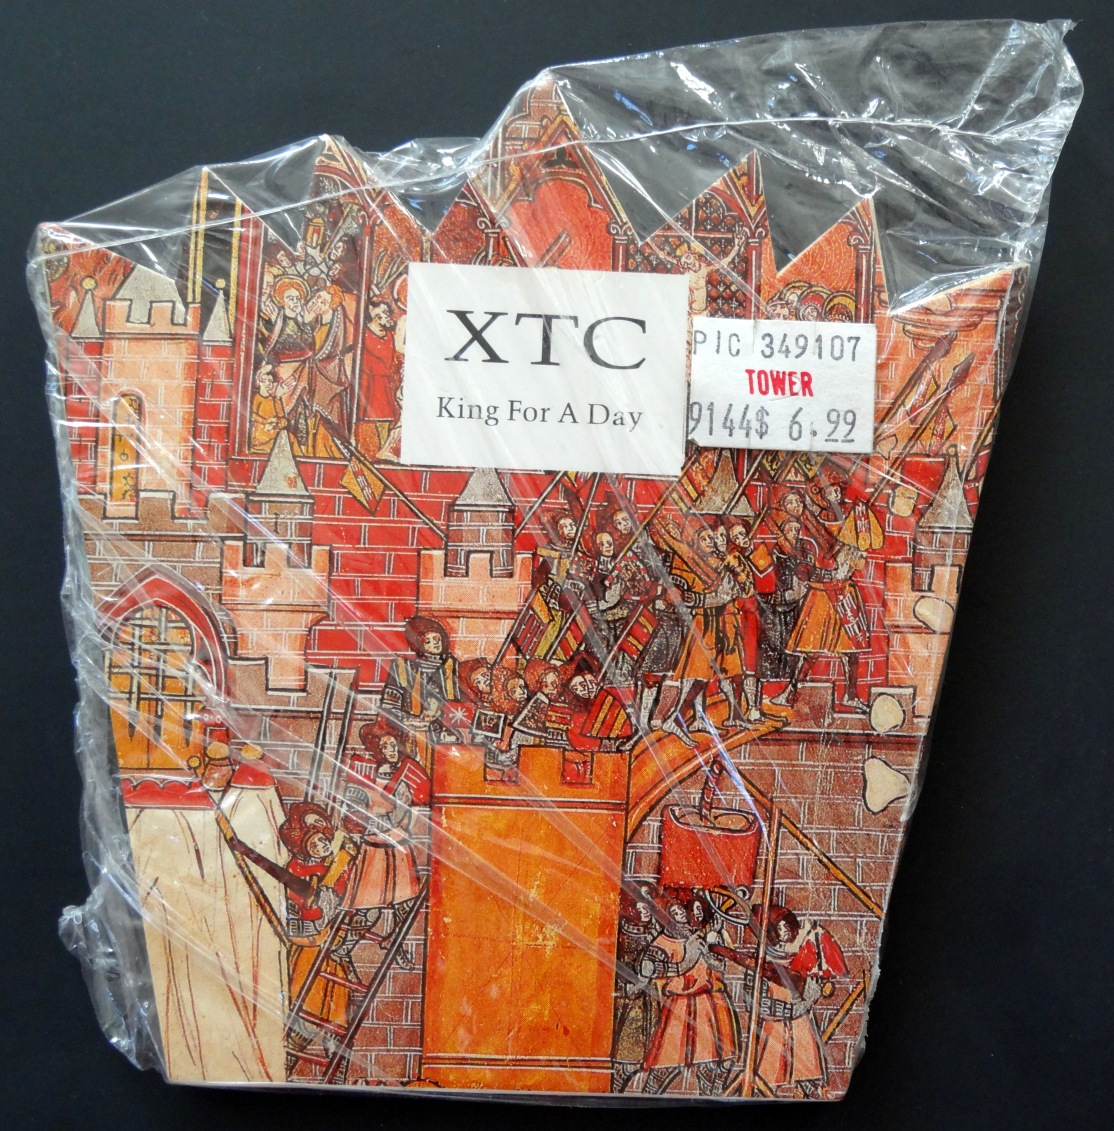 XTC King For A Day front